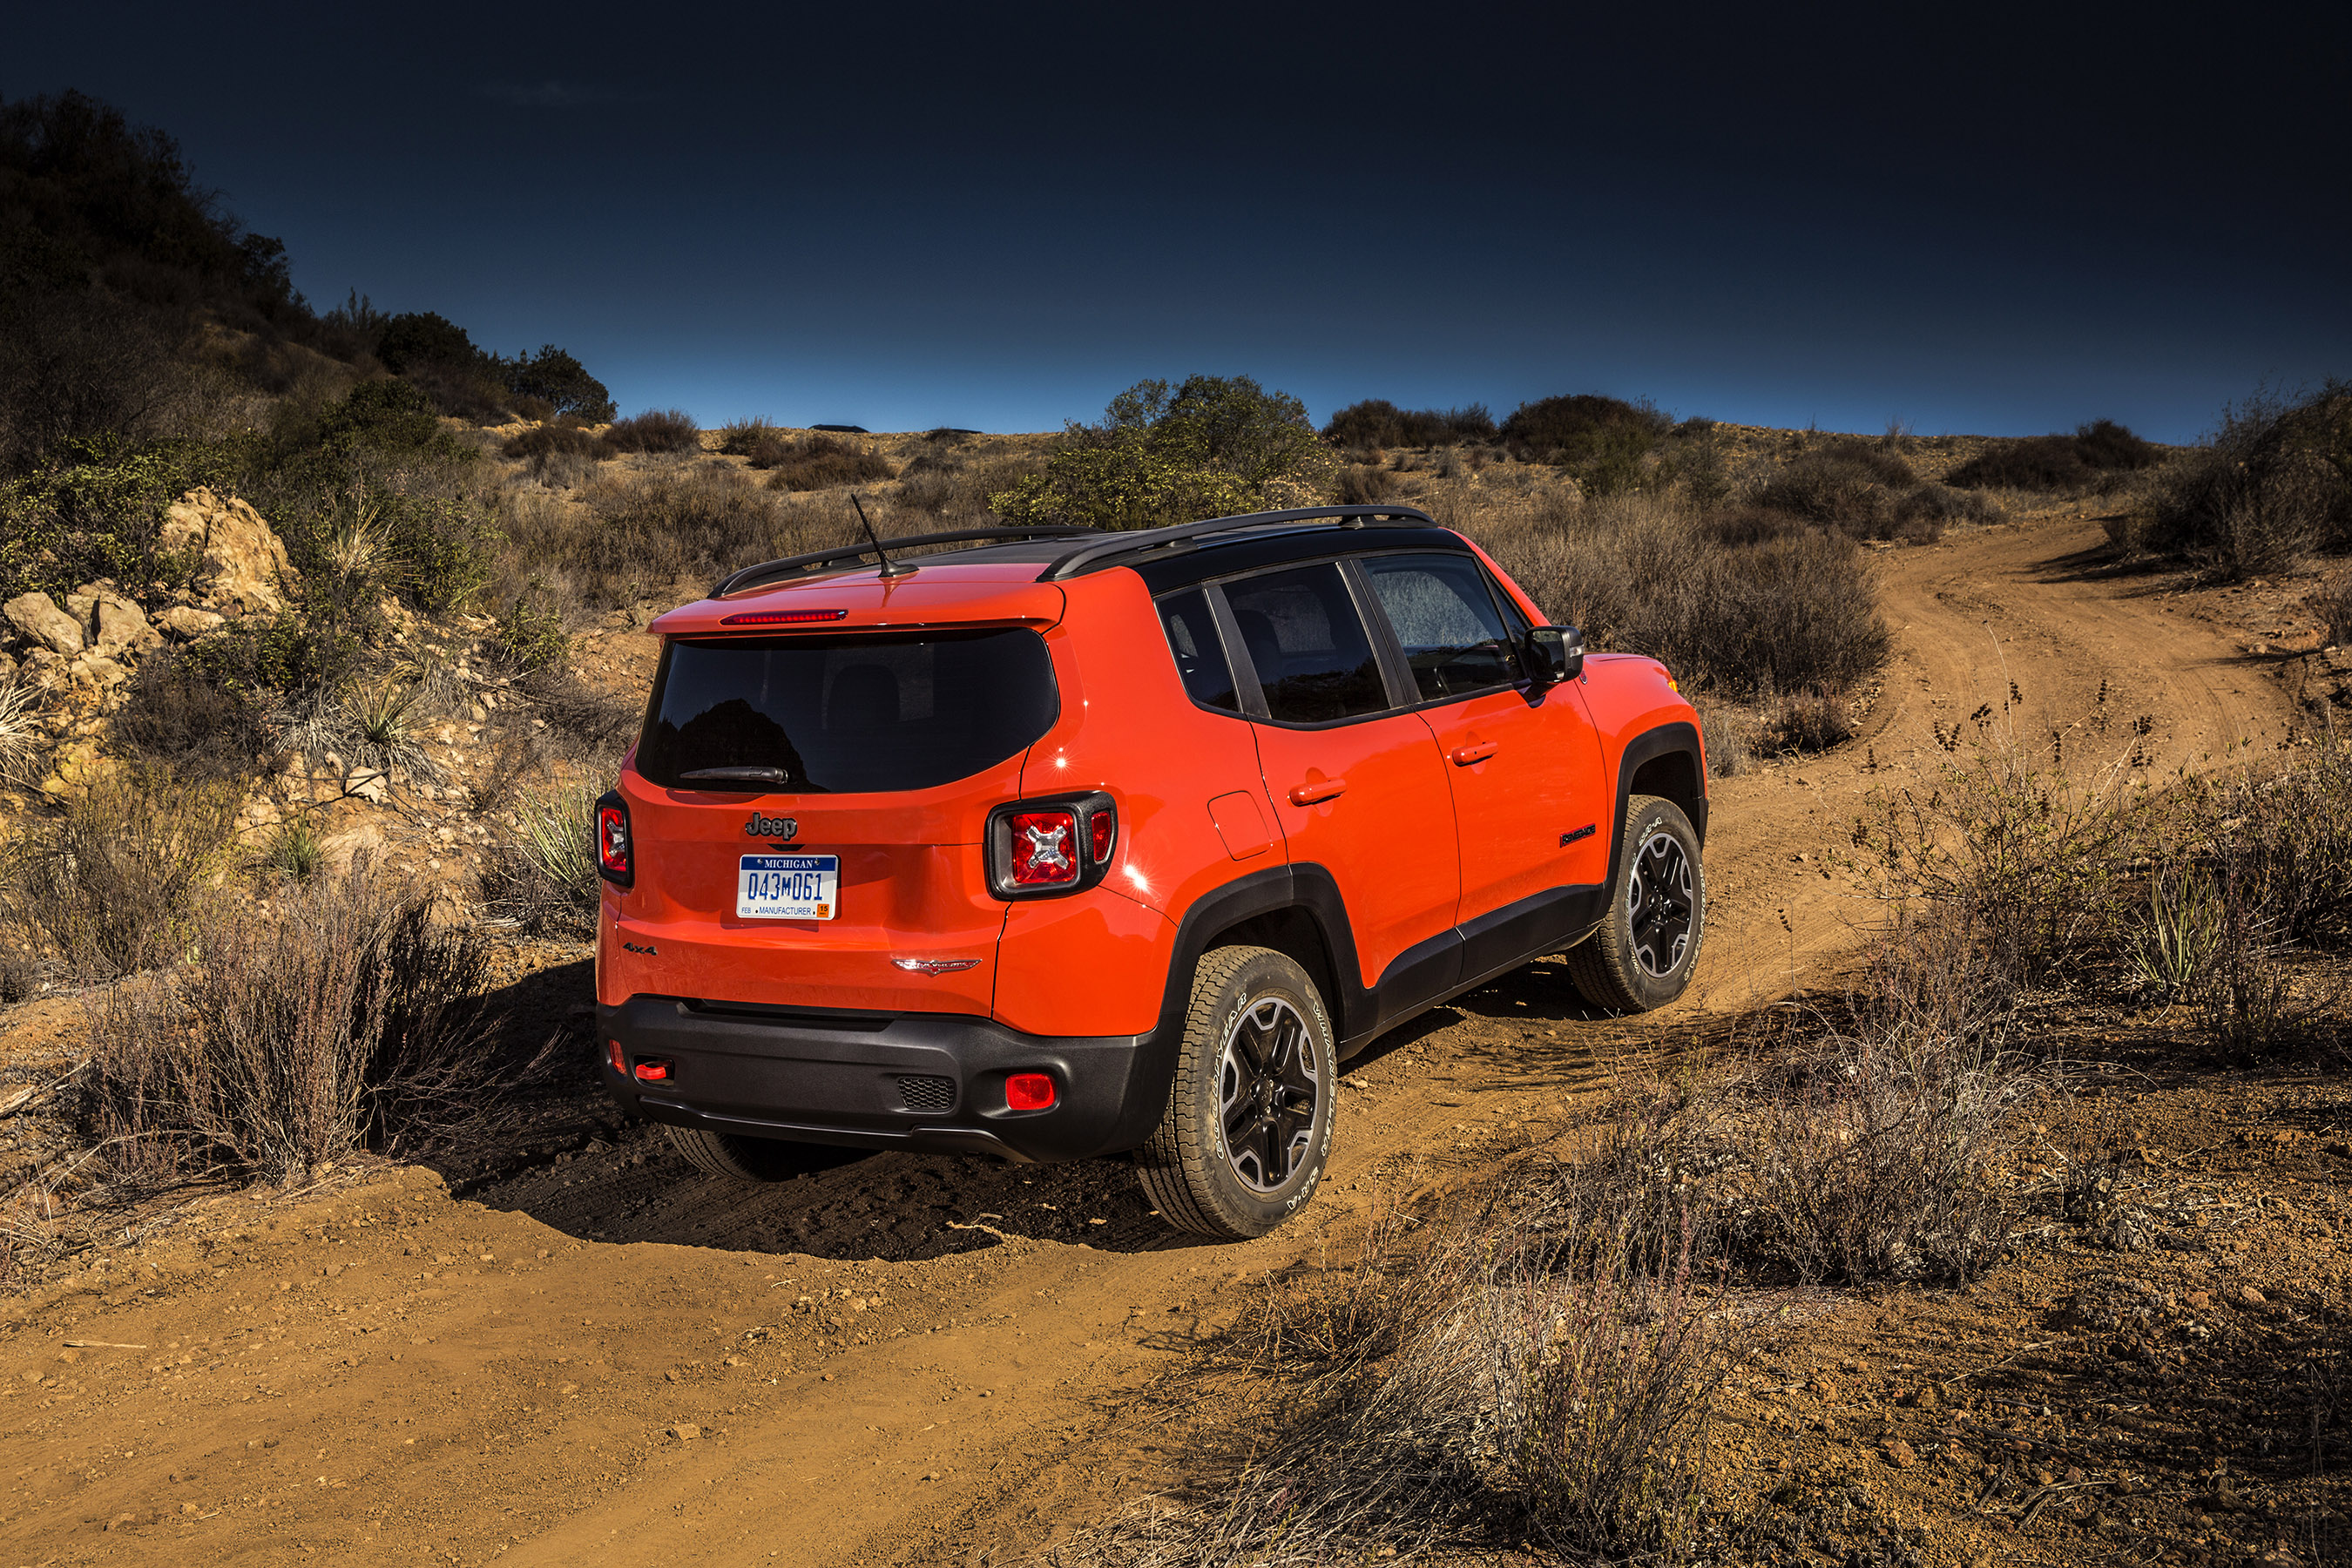 KBB.com 10 Coolest Cars: For those who believe the grass is always greener beyond the reaches of the road, the Renegade's ability & attitude qualify it as the coolest way to get there for sub-$18K.